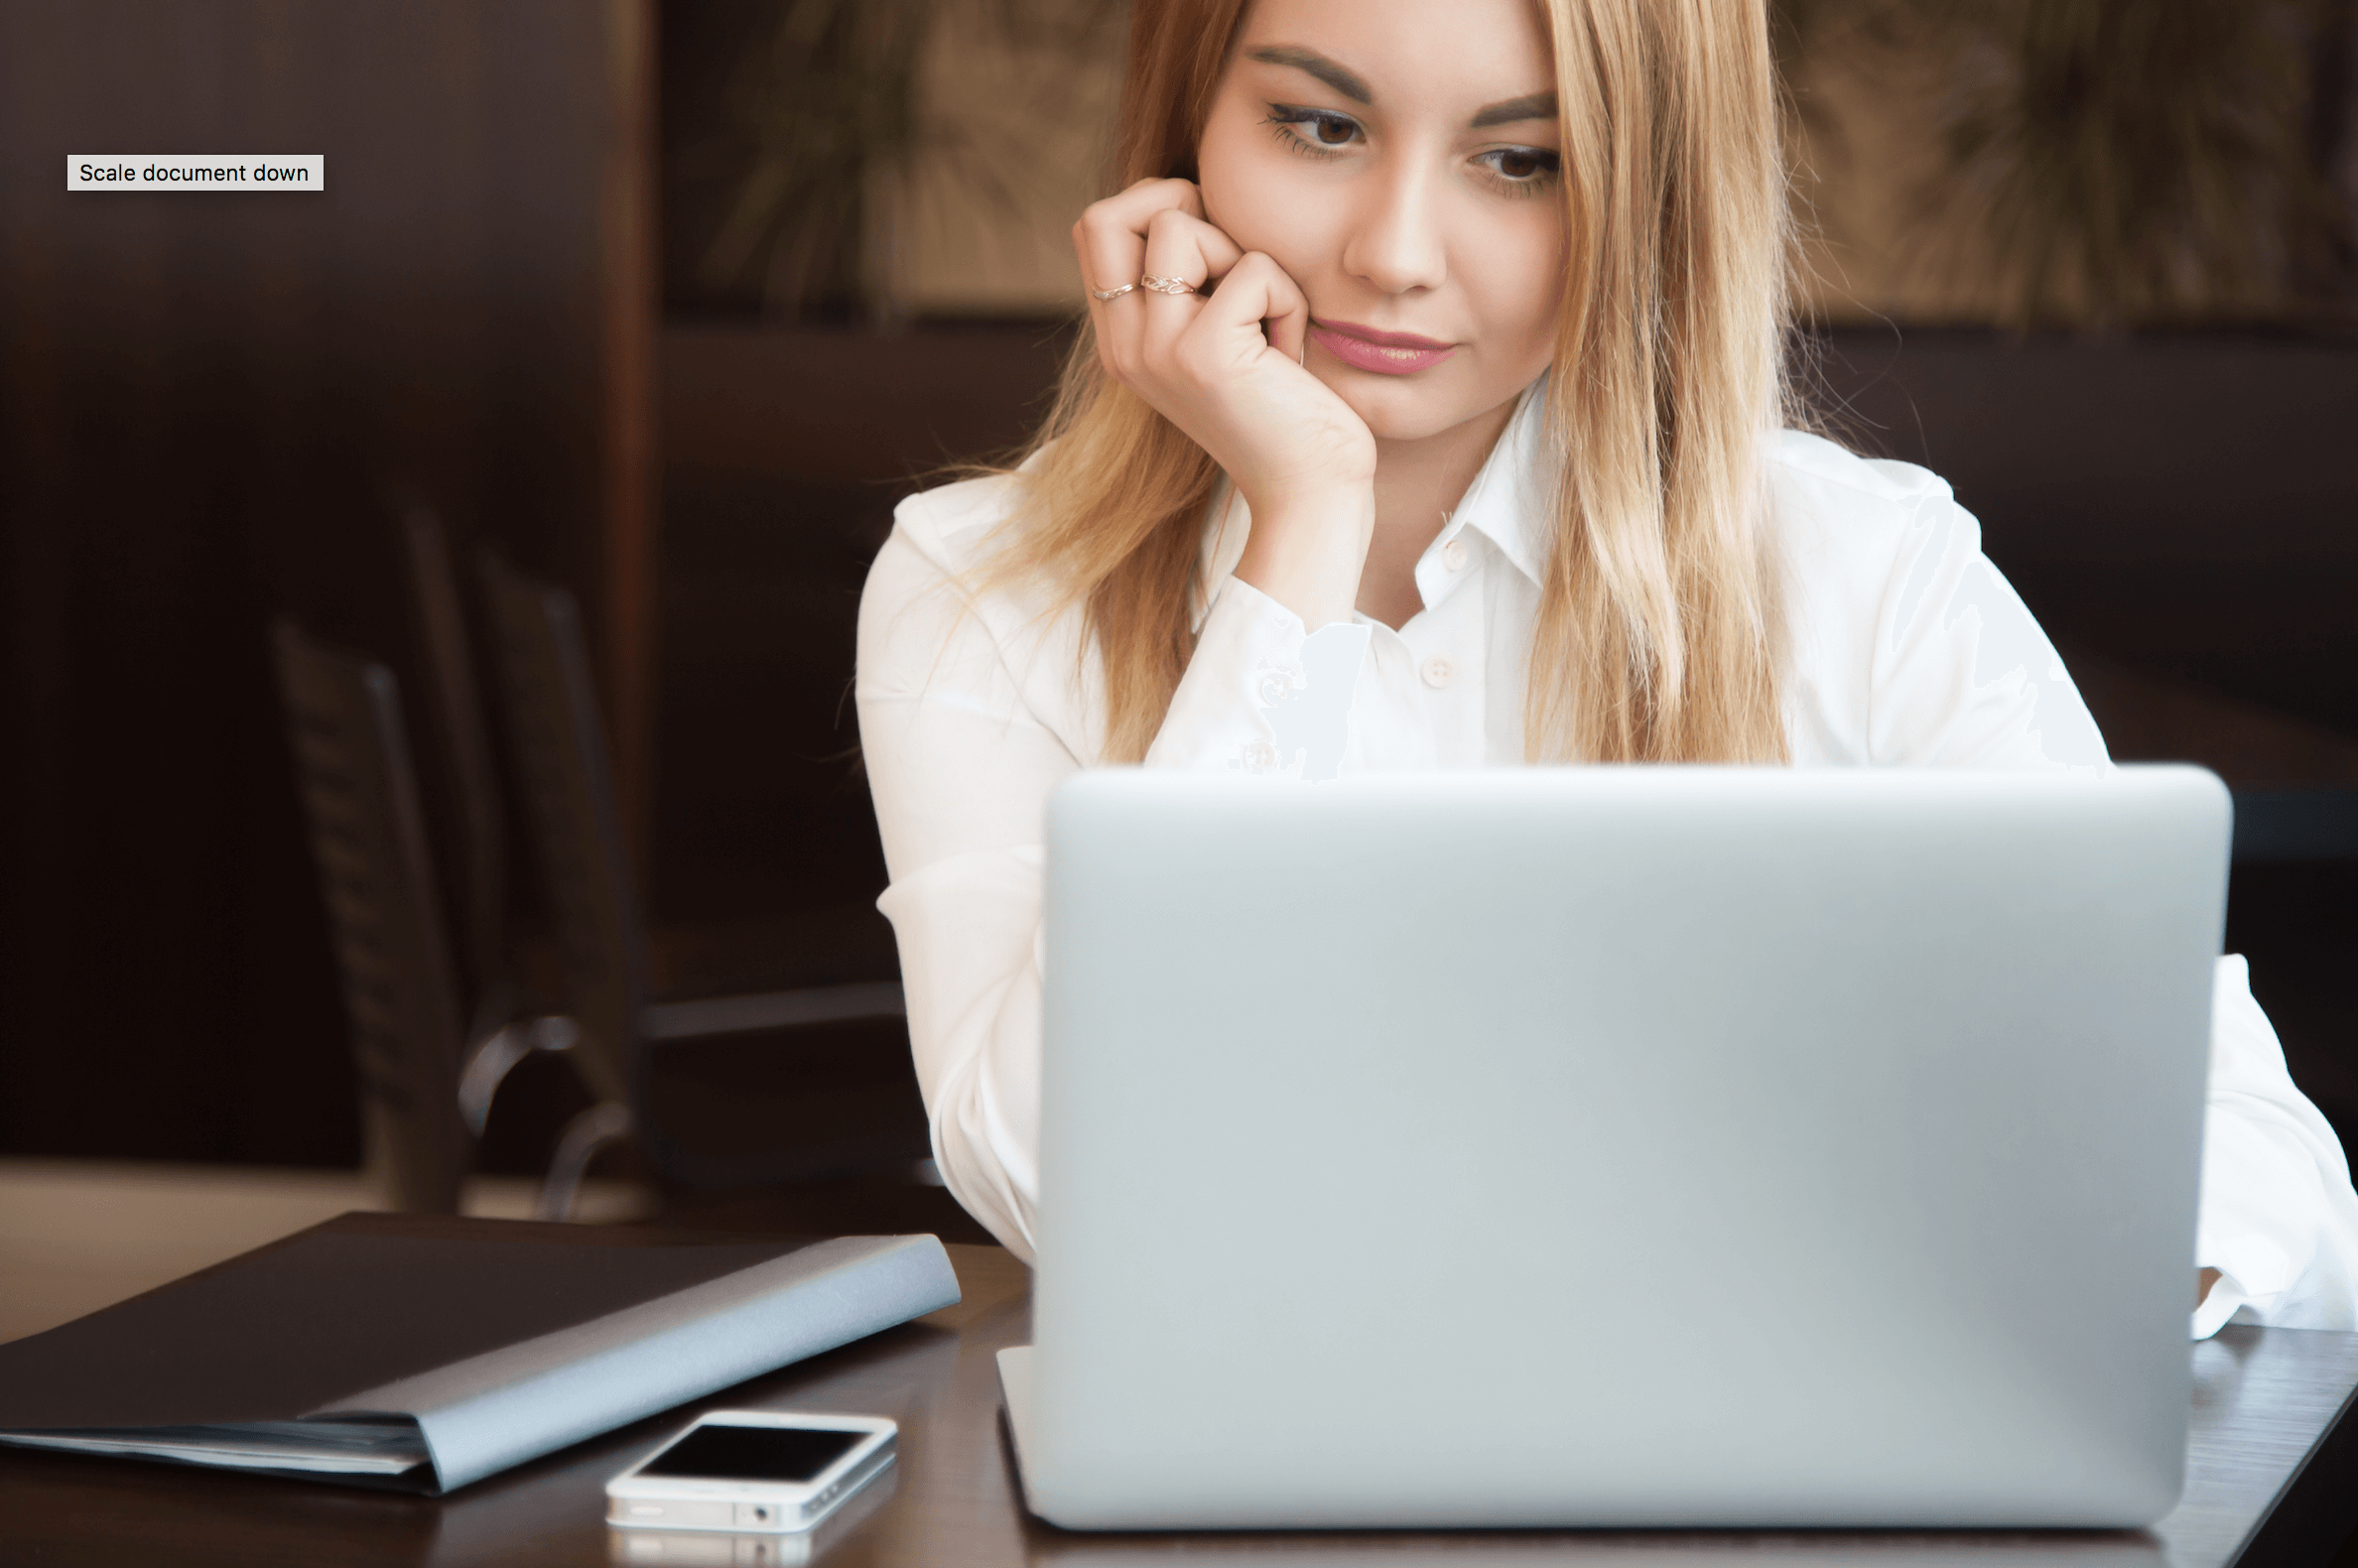 How to find specific person on dating site